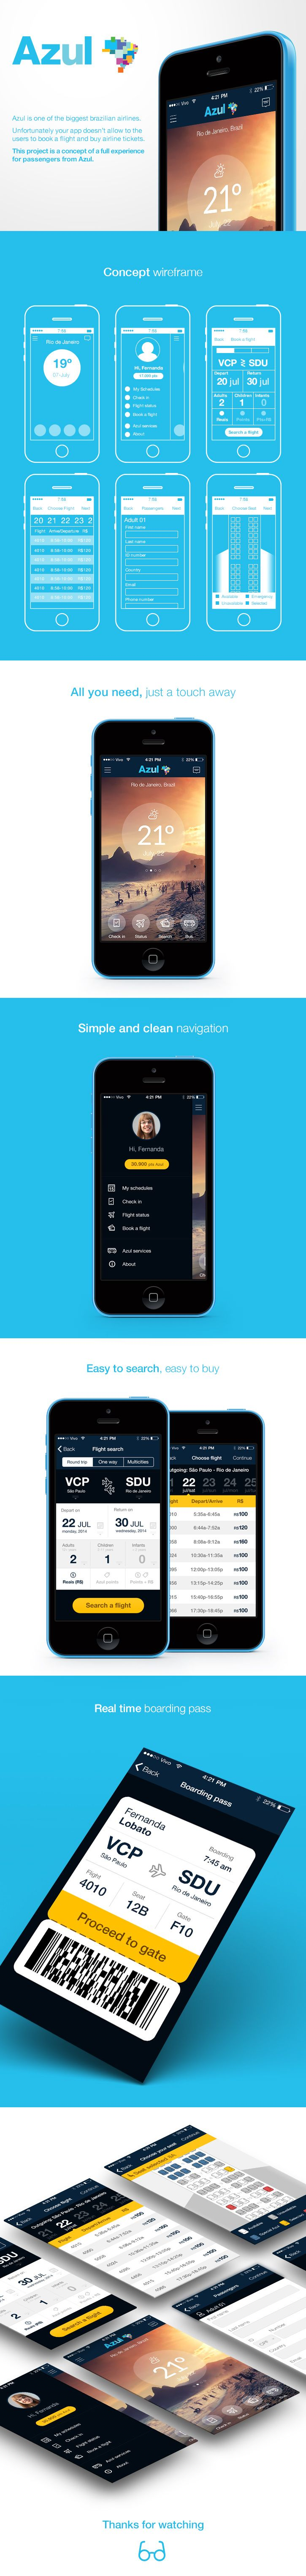 Azul Airlines – Iphone App Published by Maan Ali